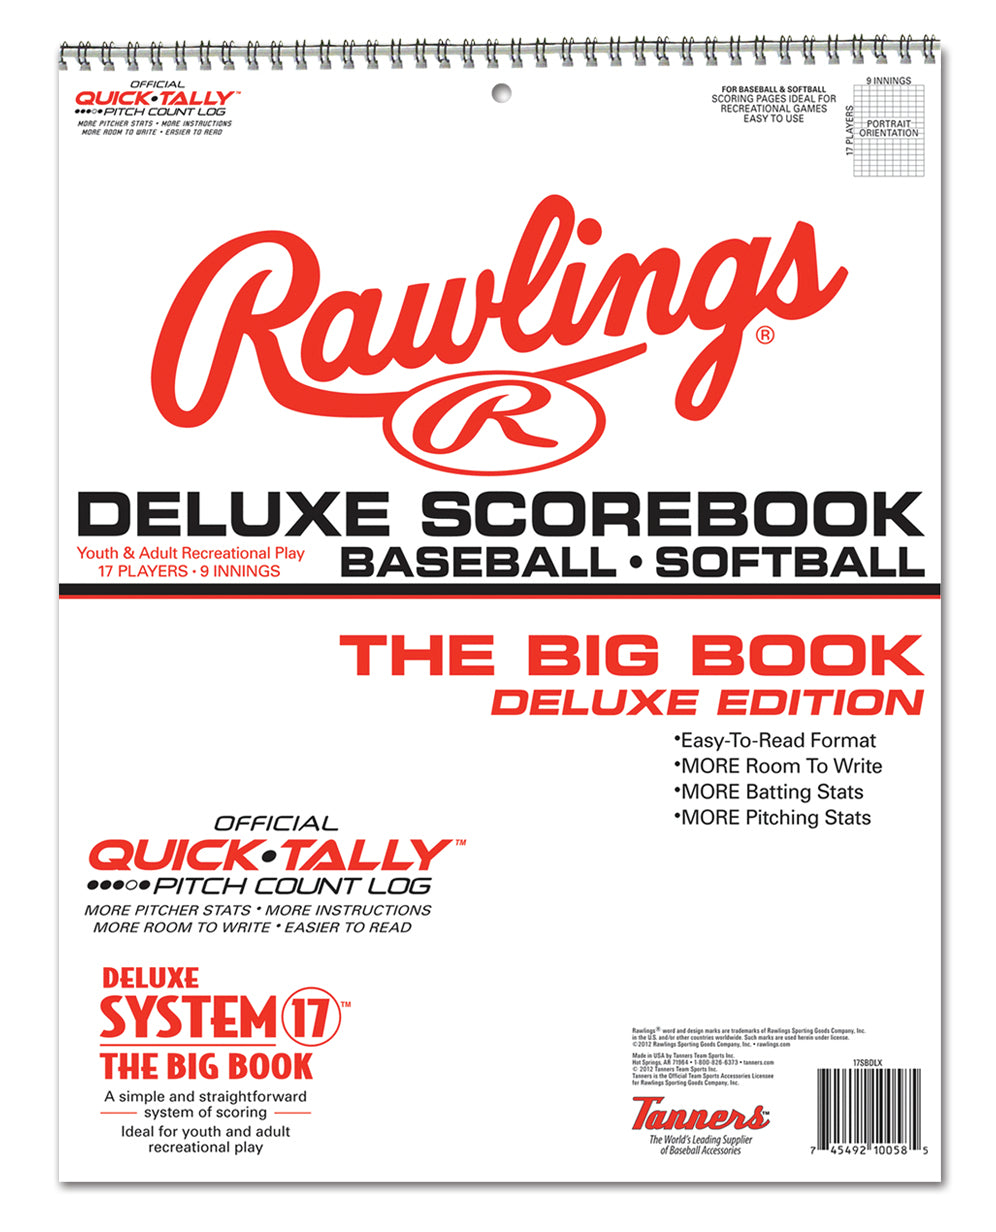 Rawlings Big Book Baseball Scorebook